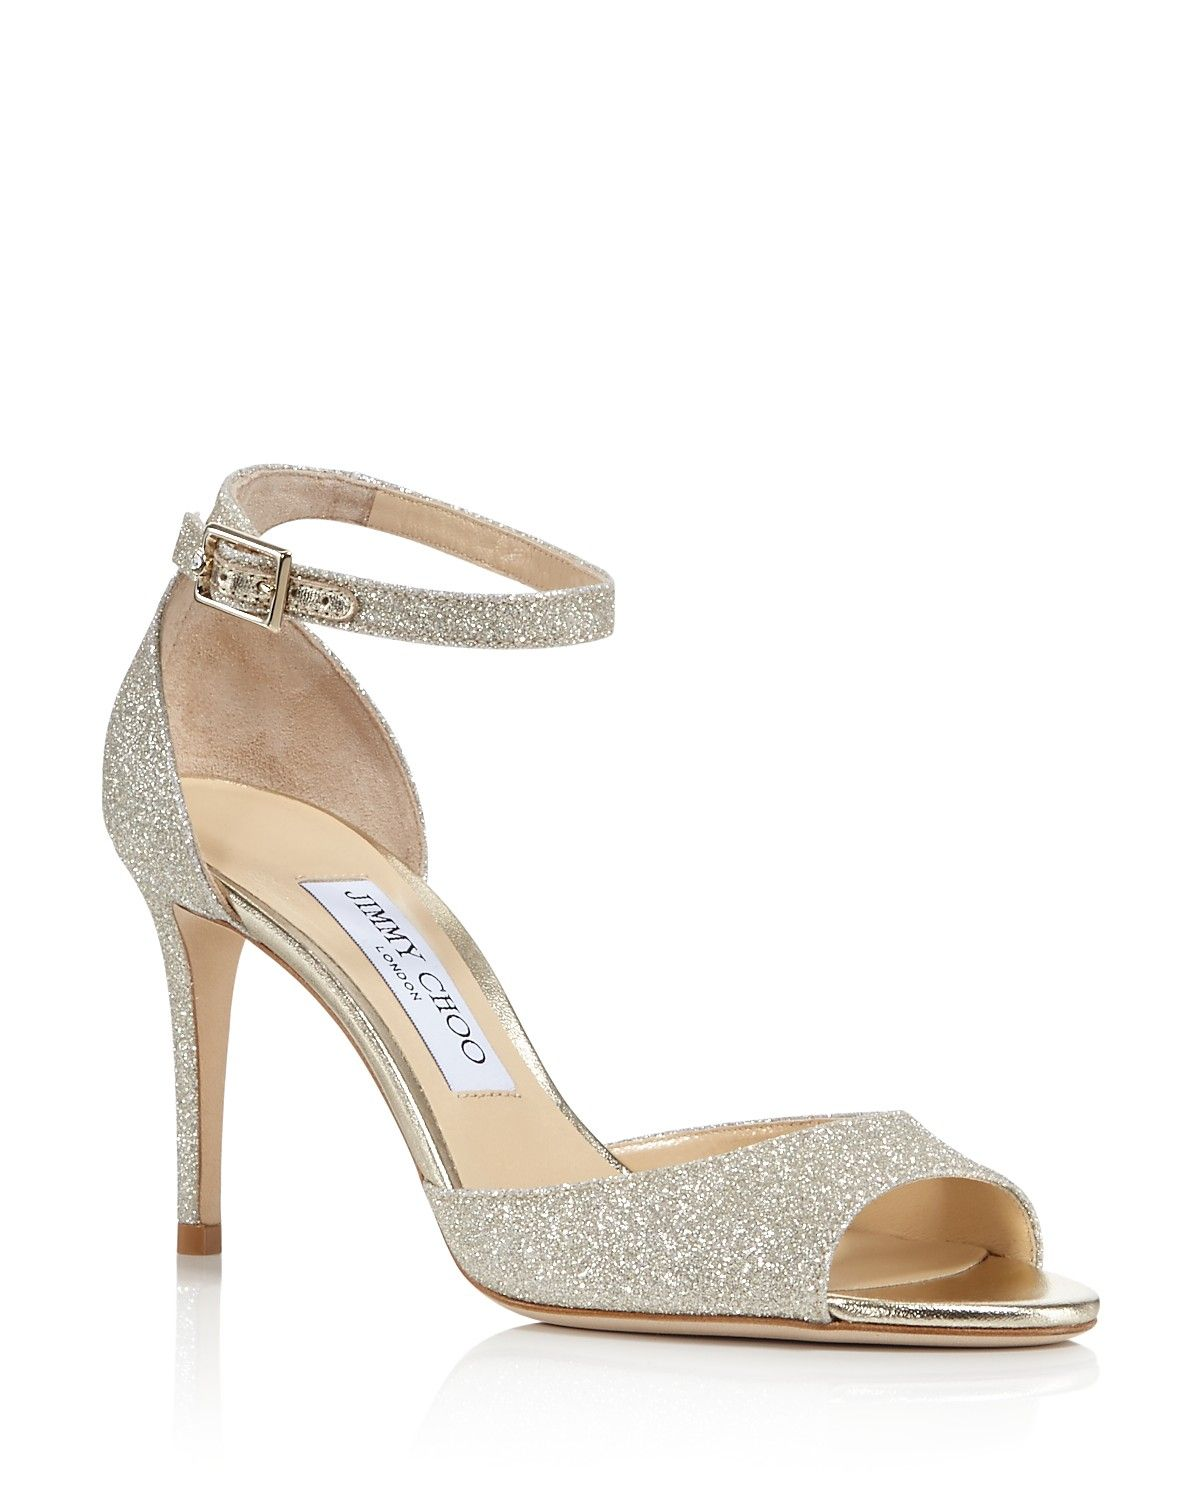 19610f4615d3 Jimmy Choo Women s Annie 85 Glittered Suede High Heel Ankle Strap Sandals  PRICE  695.00